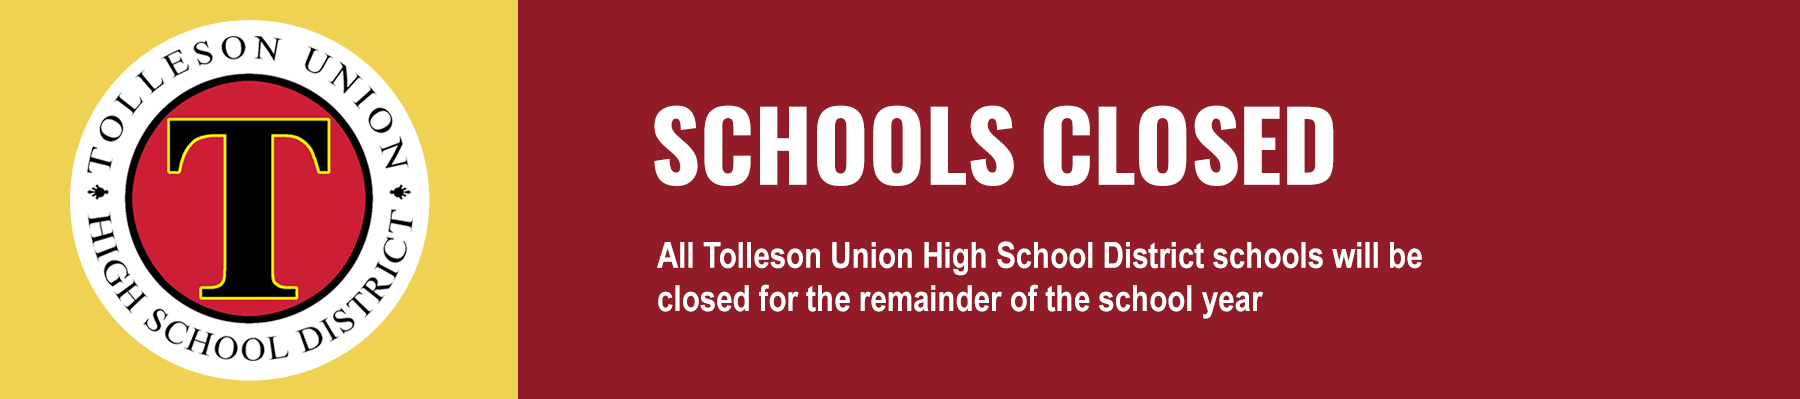 Schools Closed. All Tolleson Union High School district schools will be closed for the remainder of the school year